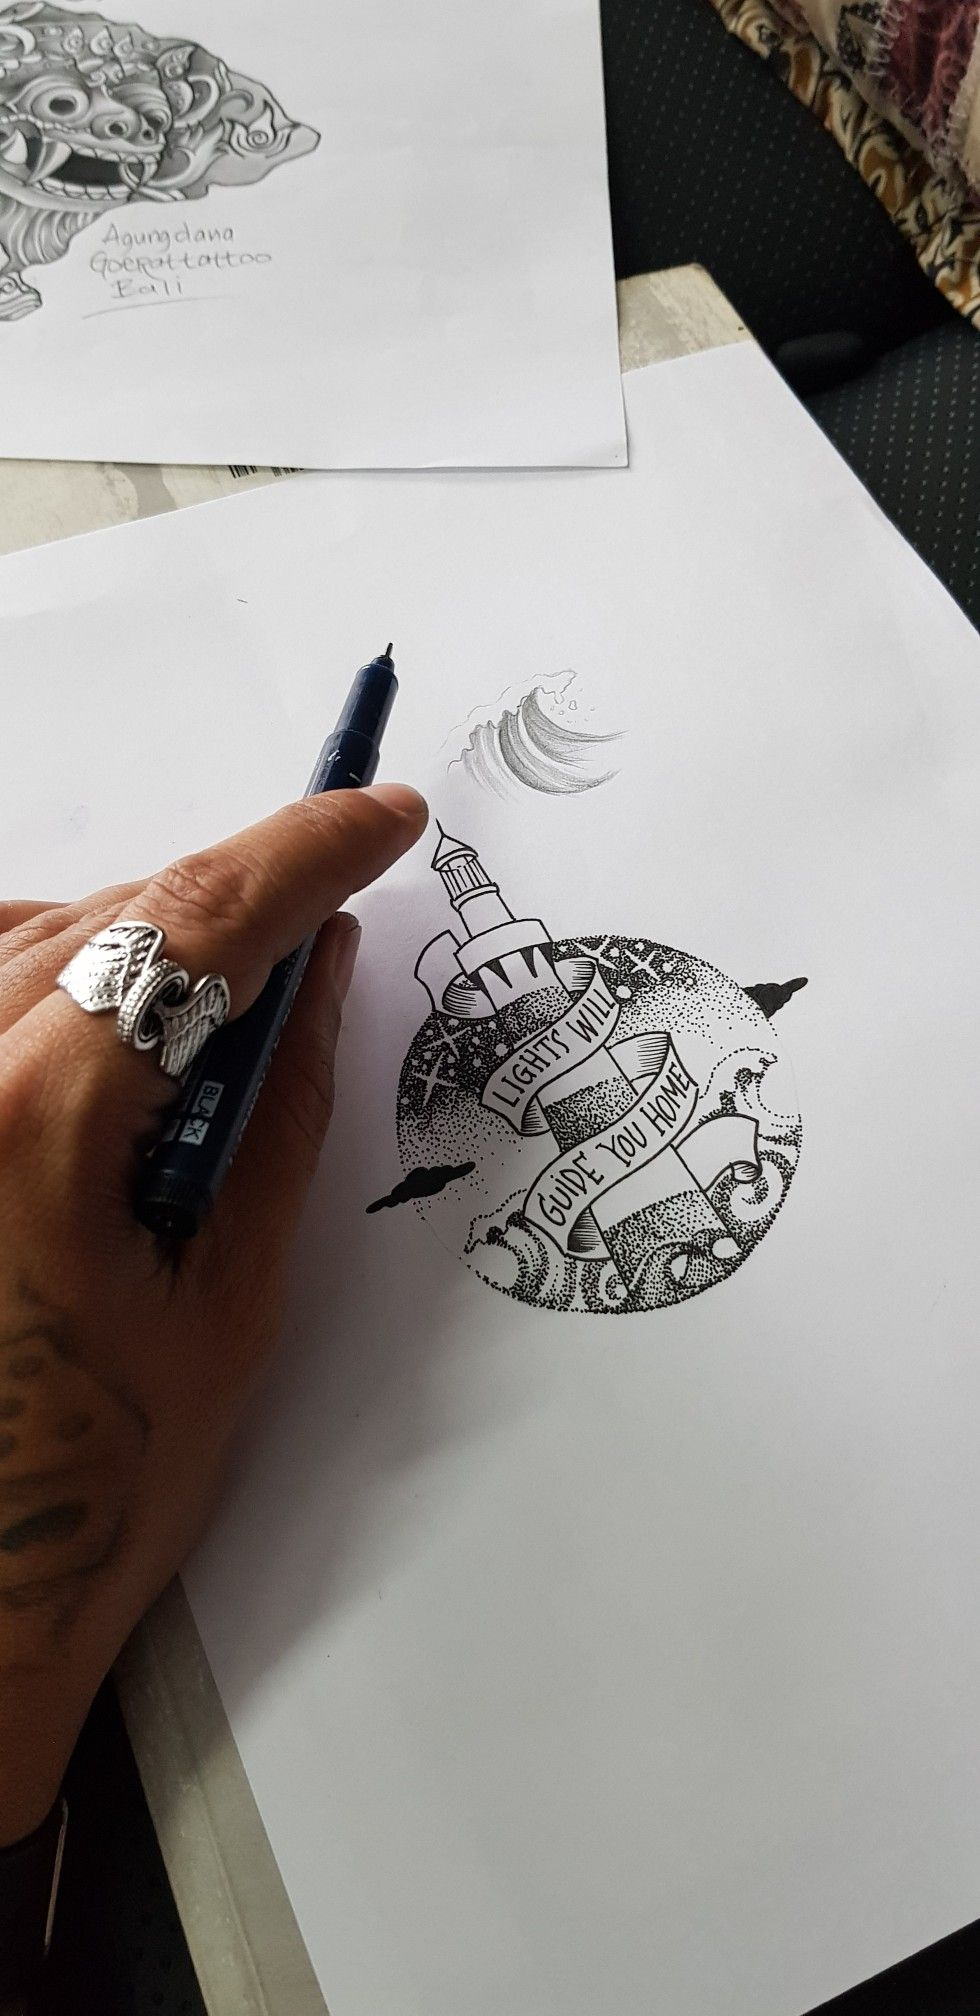 light house lights will guide you home sketch drawing done